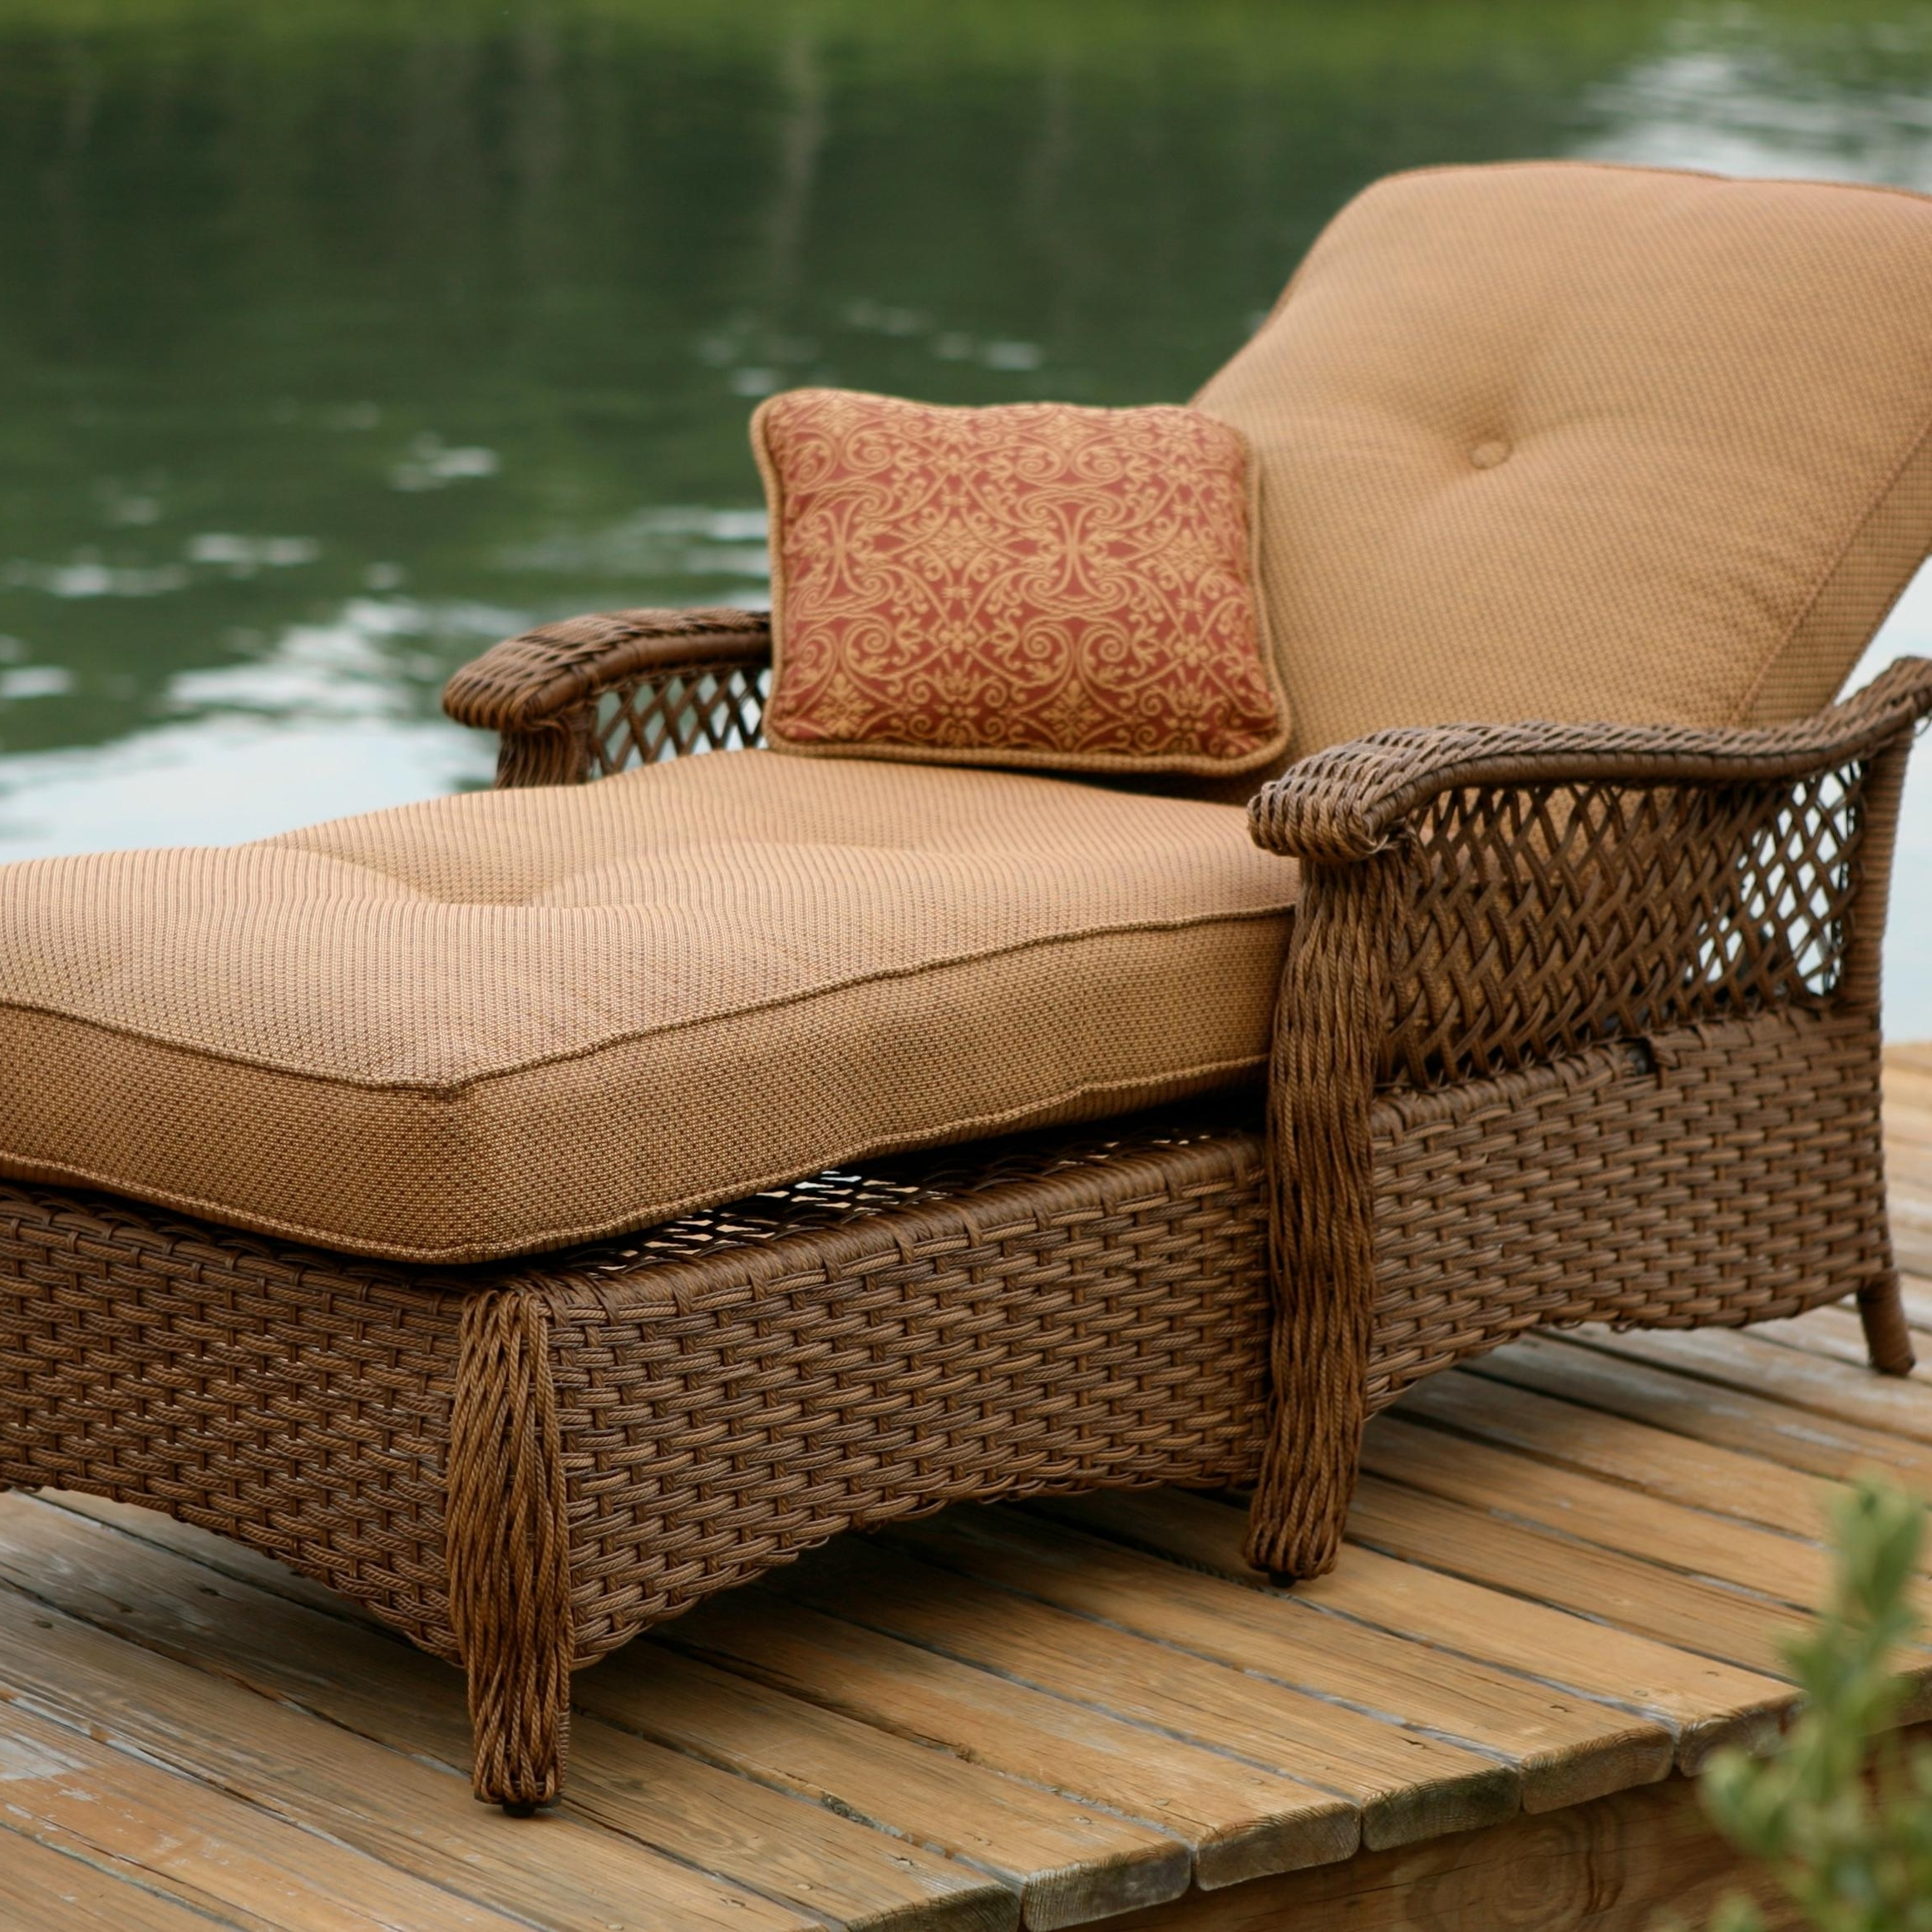 Famous Agio Veranda–Agio Outdoor Tan Woven Chaise Lounge Chair With Seat Within Patio Chaise Lounge Chairs (View 11 of 15)